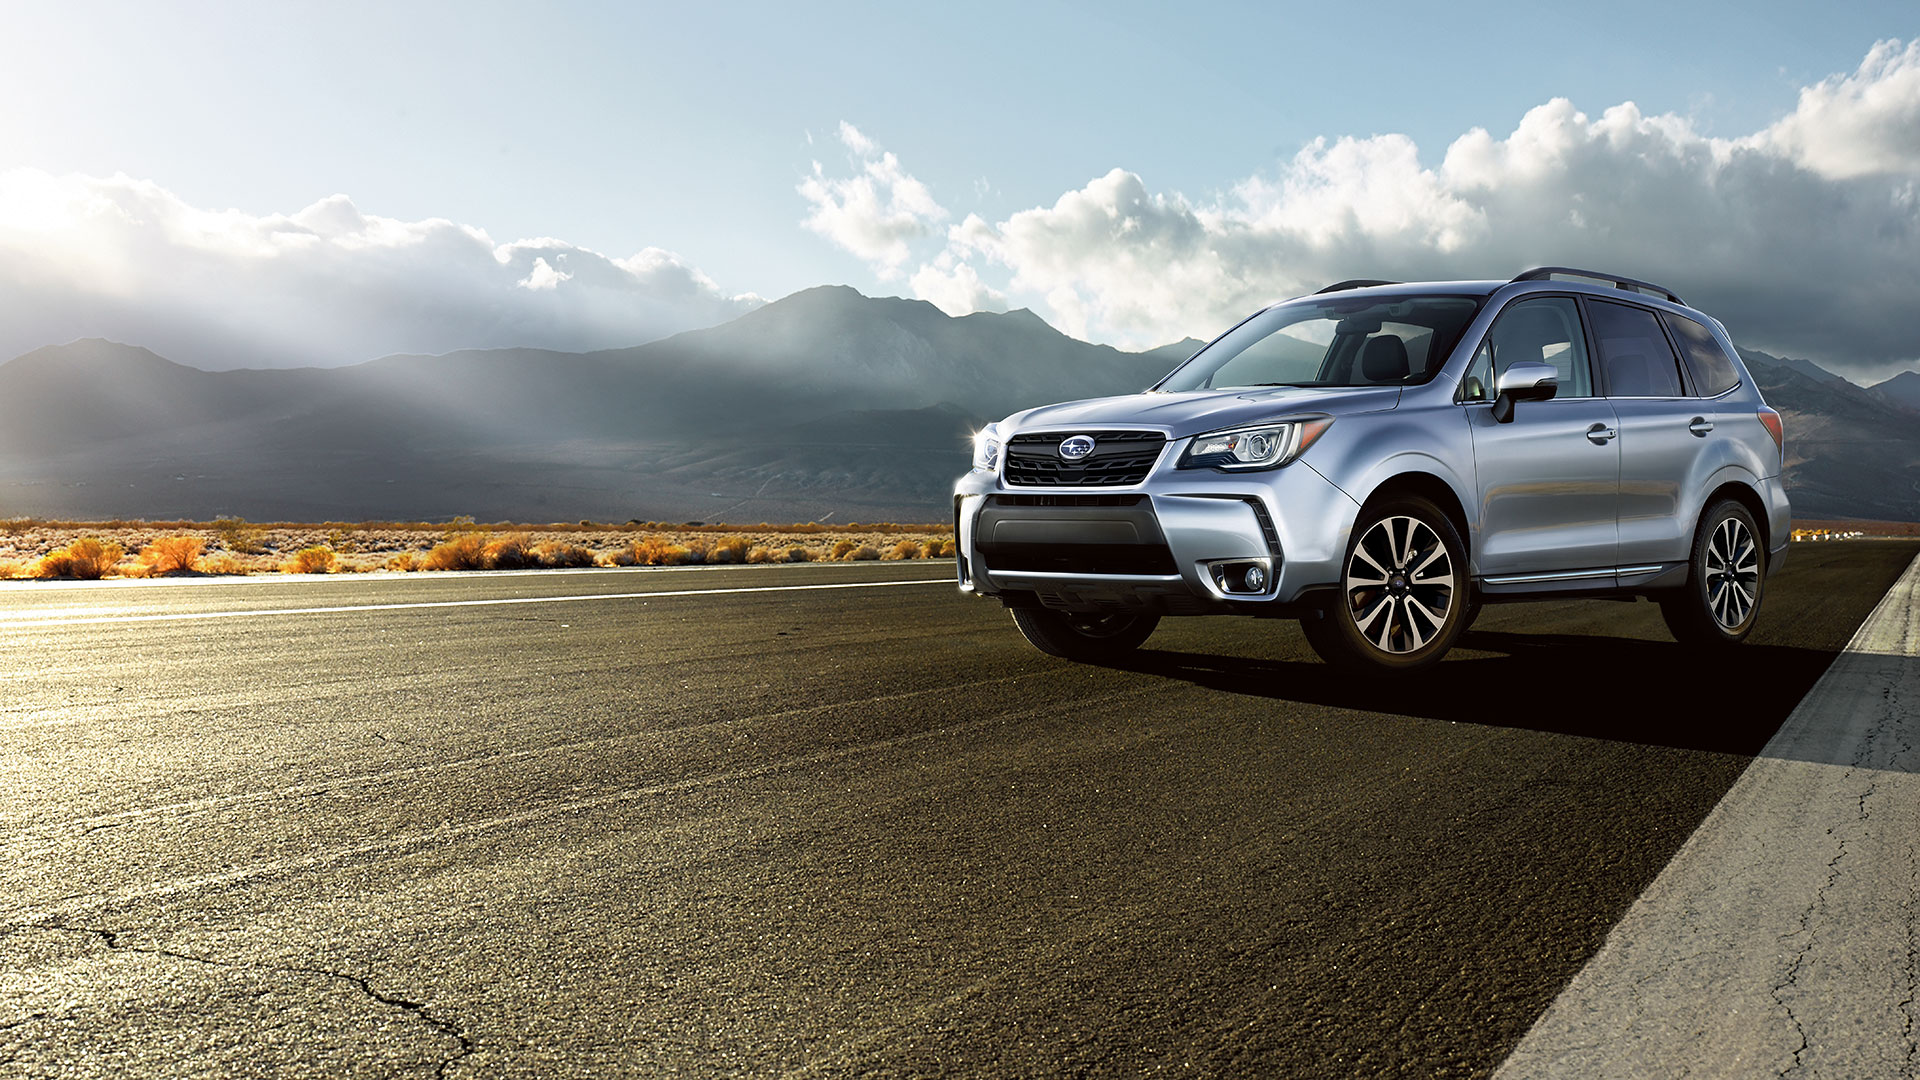 1920x1080 - Subaru Forester Wallpapers 2